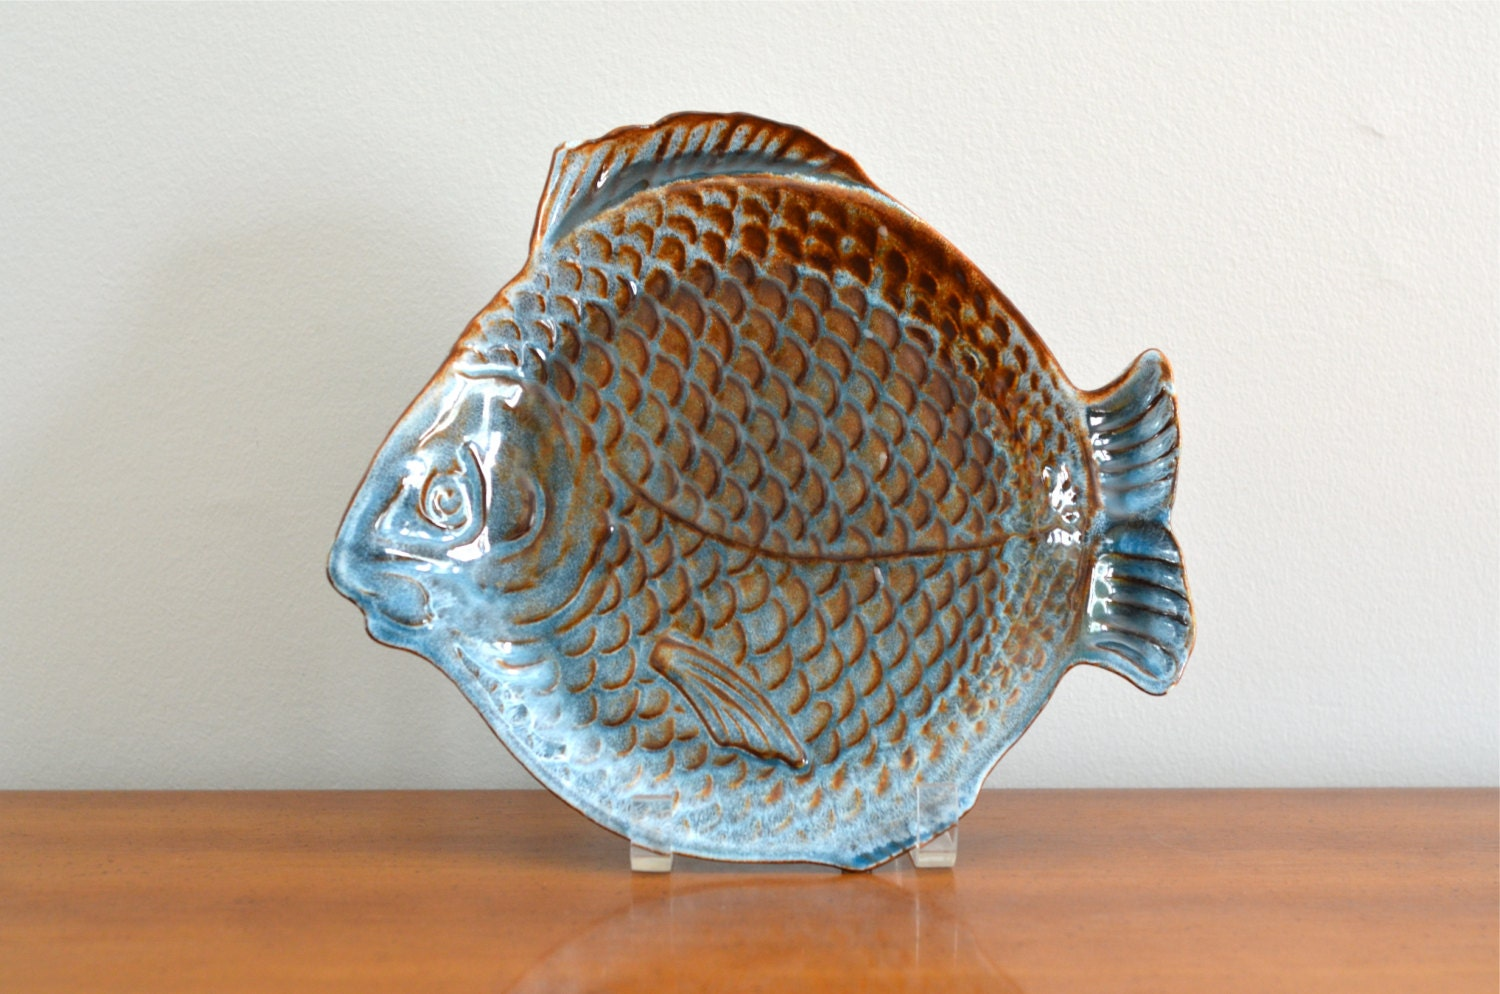 Vintage Dryden Pottery Fish Shaped Plate Tray Serving Dish